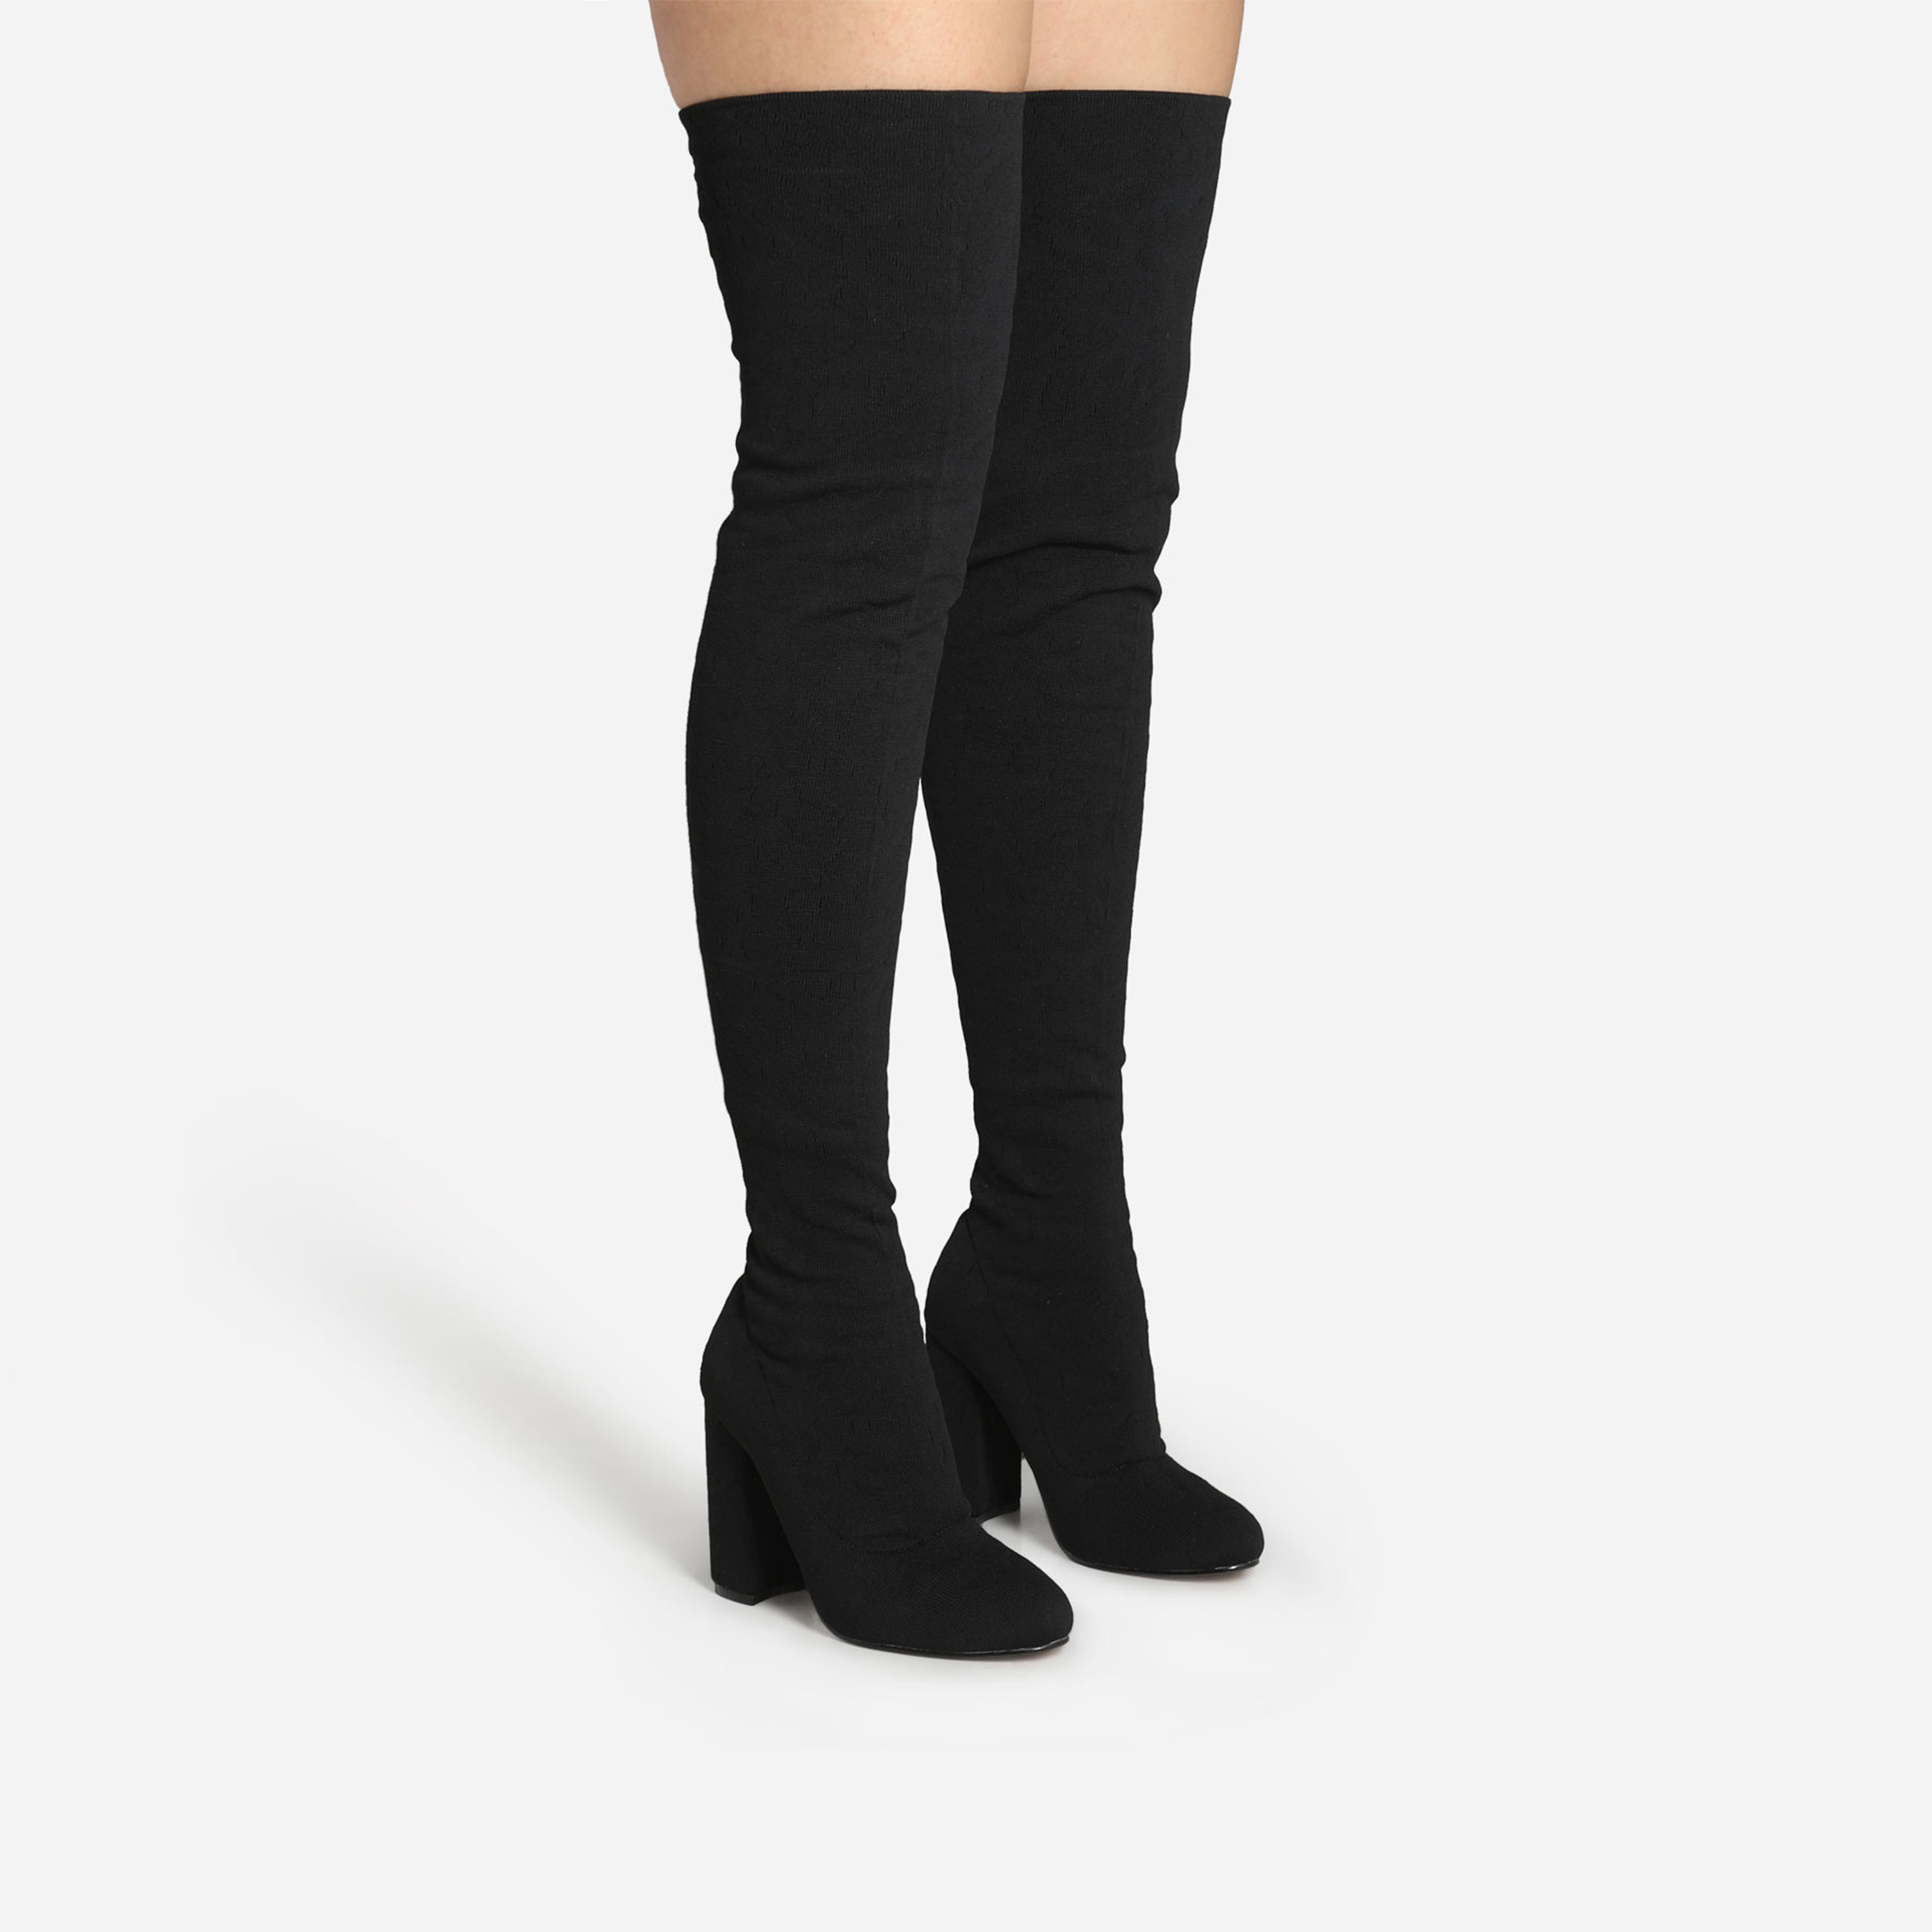 Centrefold Over The Knee Thigh High Long Boot In Black Knit